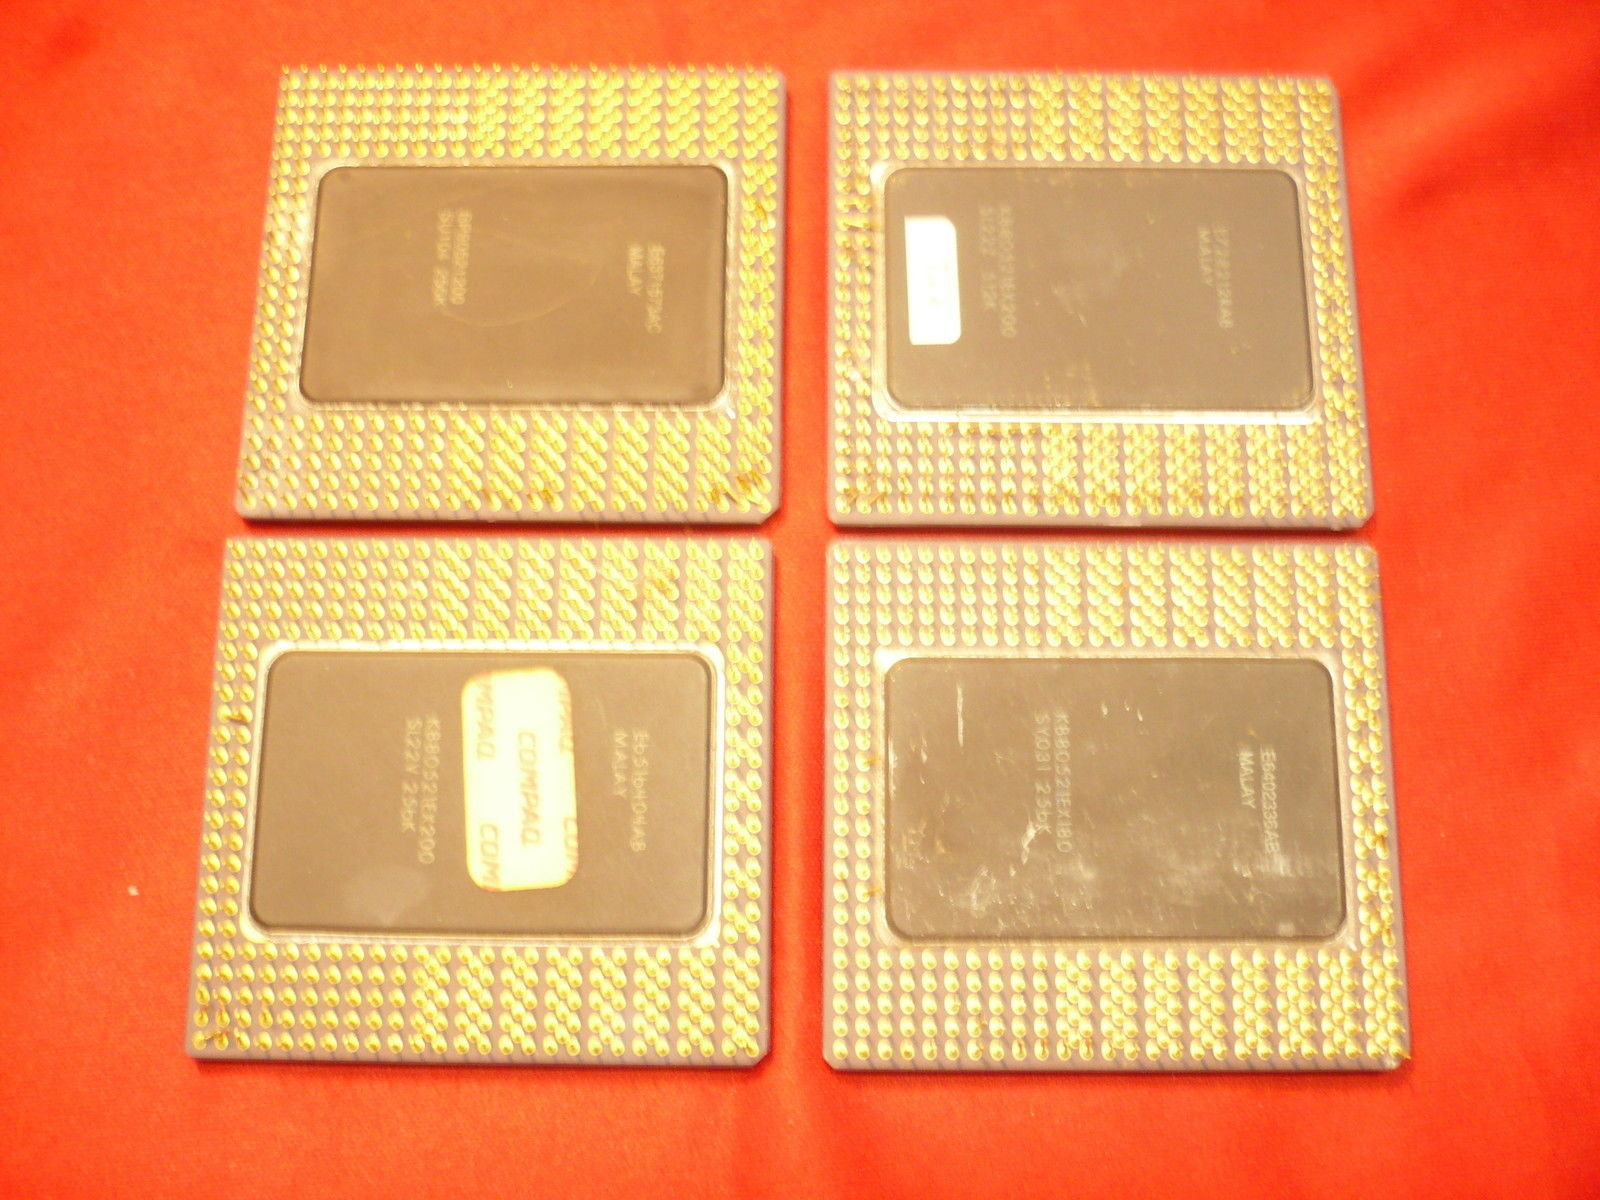 Intel i960 Ceramic Gold Cap Processor, Ceramic Processor, Gold Cap CPU Chips, Pinned Processors, Pro